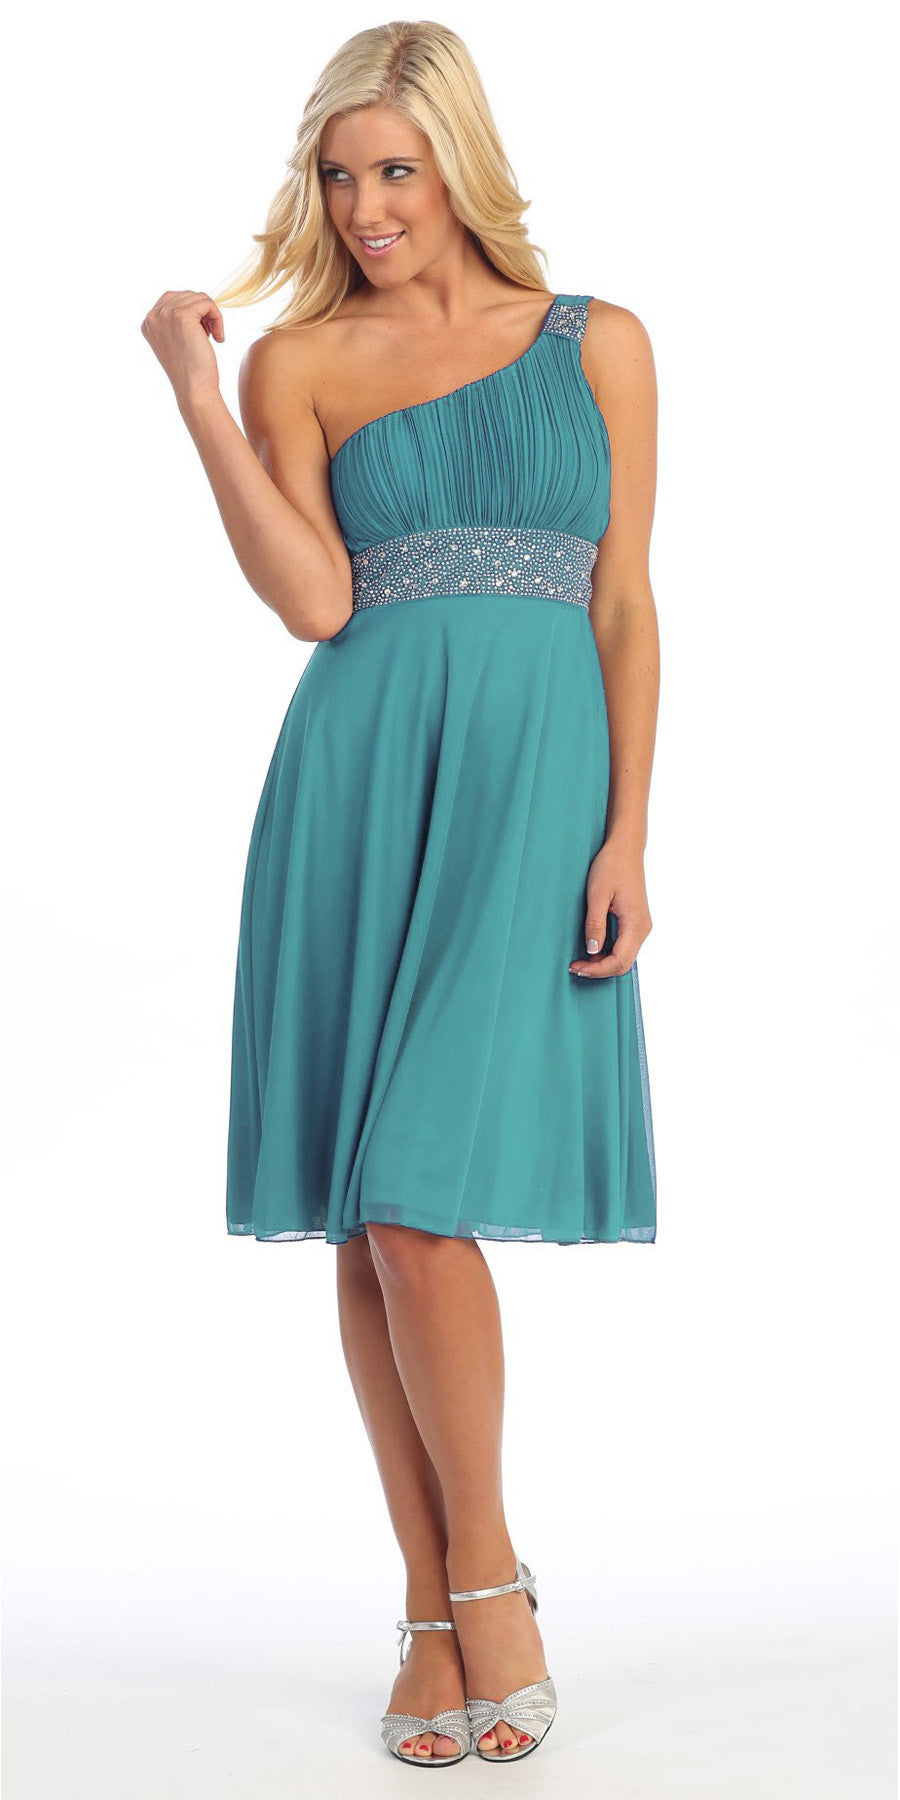 Emerald Green Knee Length Cocktail Dress chiffon One Shoulder Cruise Dress